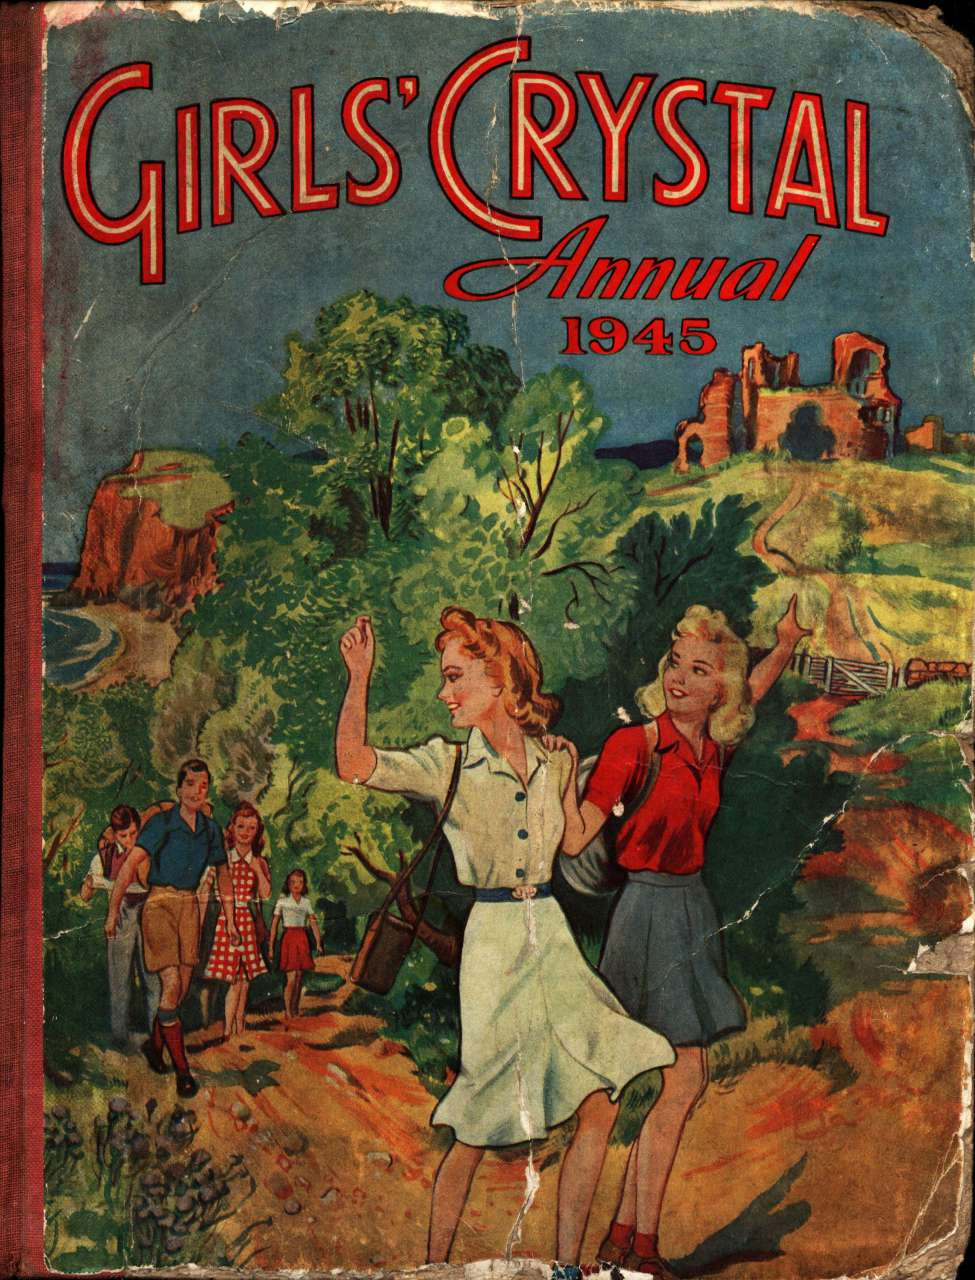 Comic Book Cover For Girls' Crystal Annual 1945